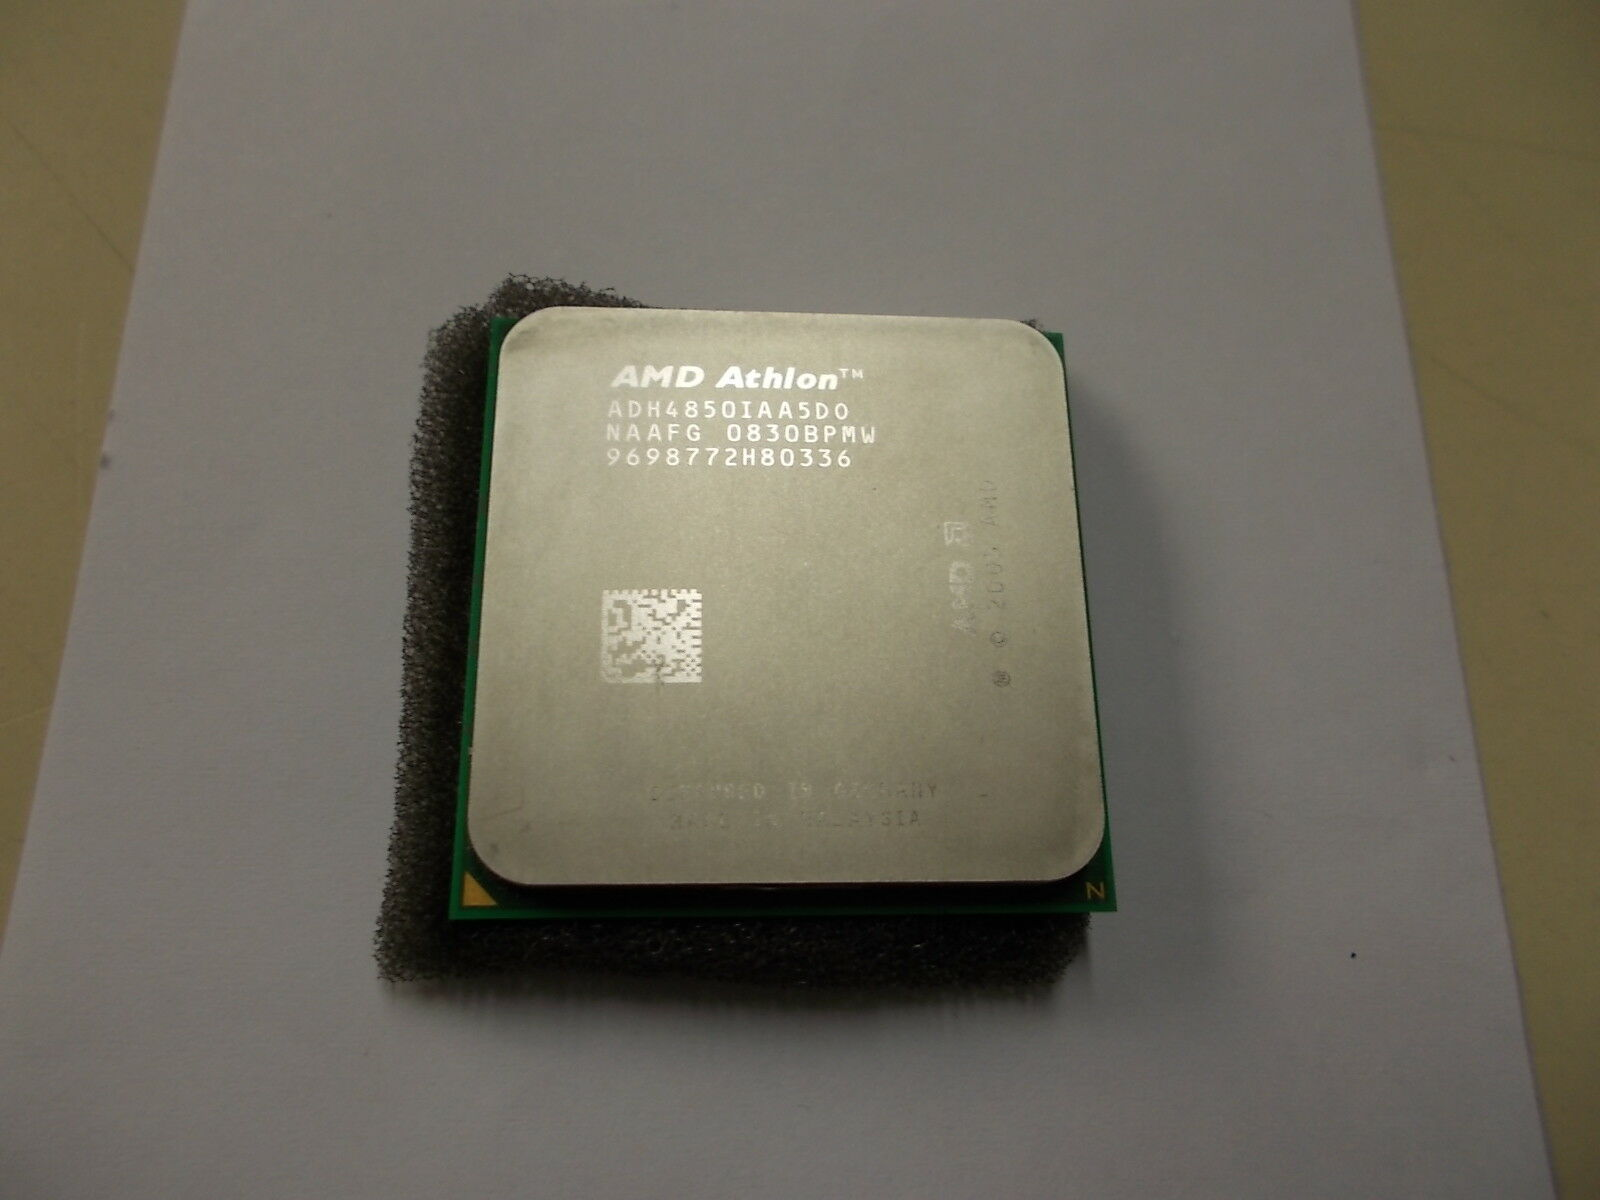 AMD ATHLON 64 X2 DUAL CORE PROCESSOR 3600 DRIVERS